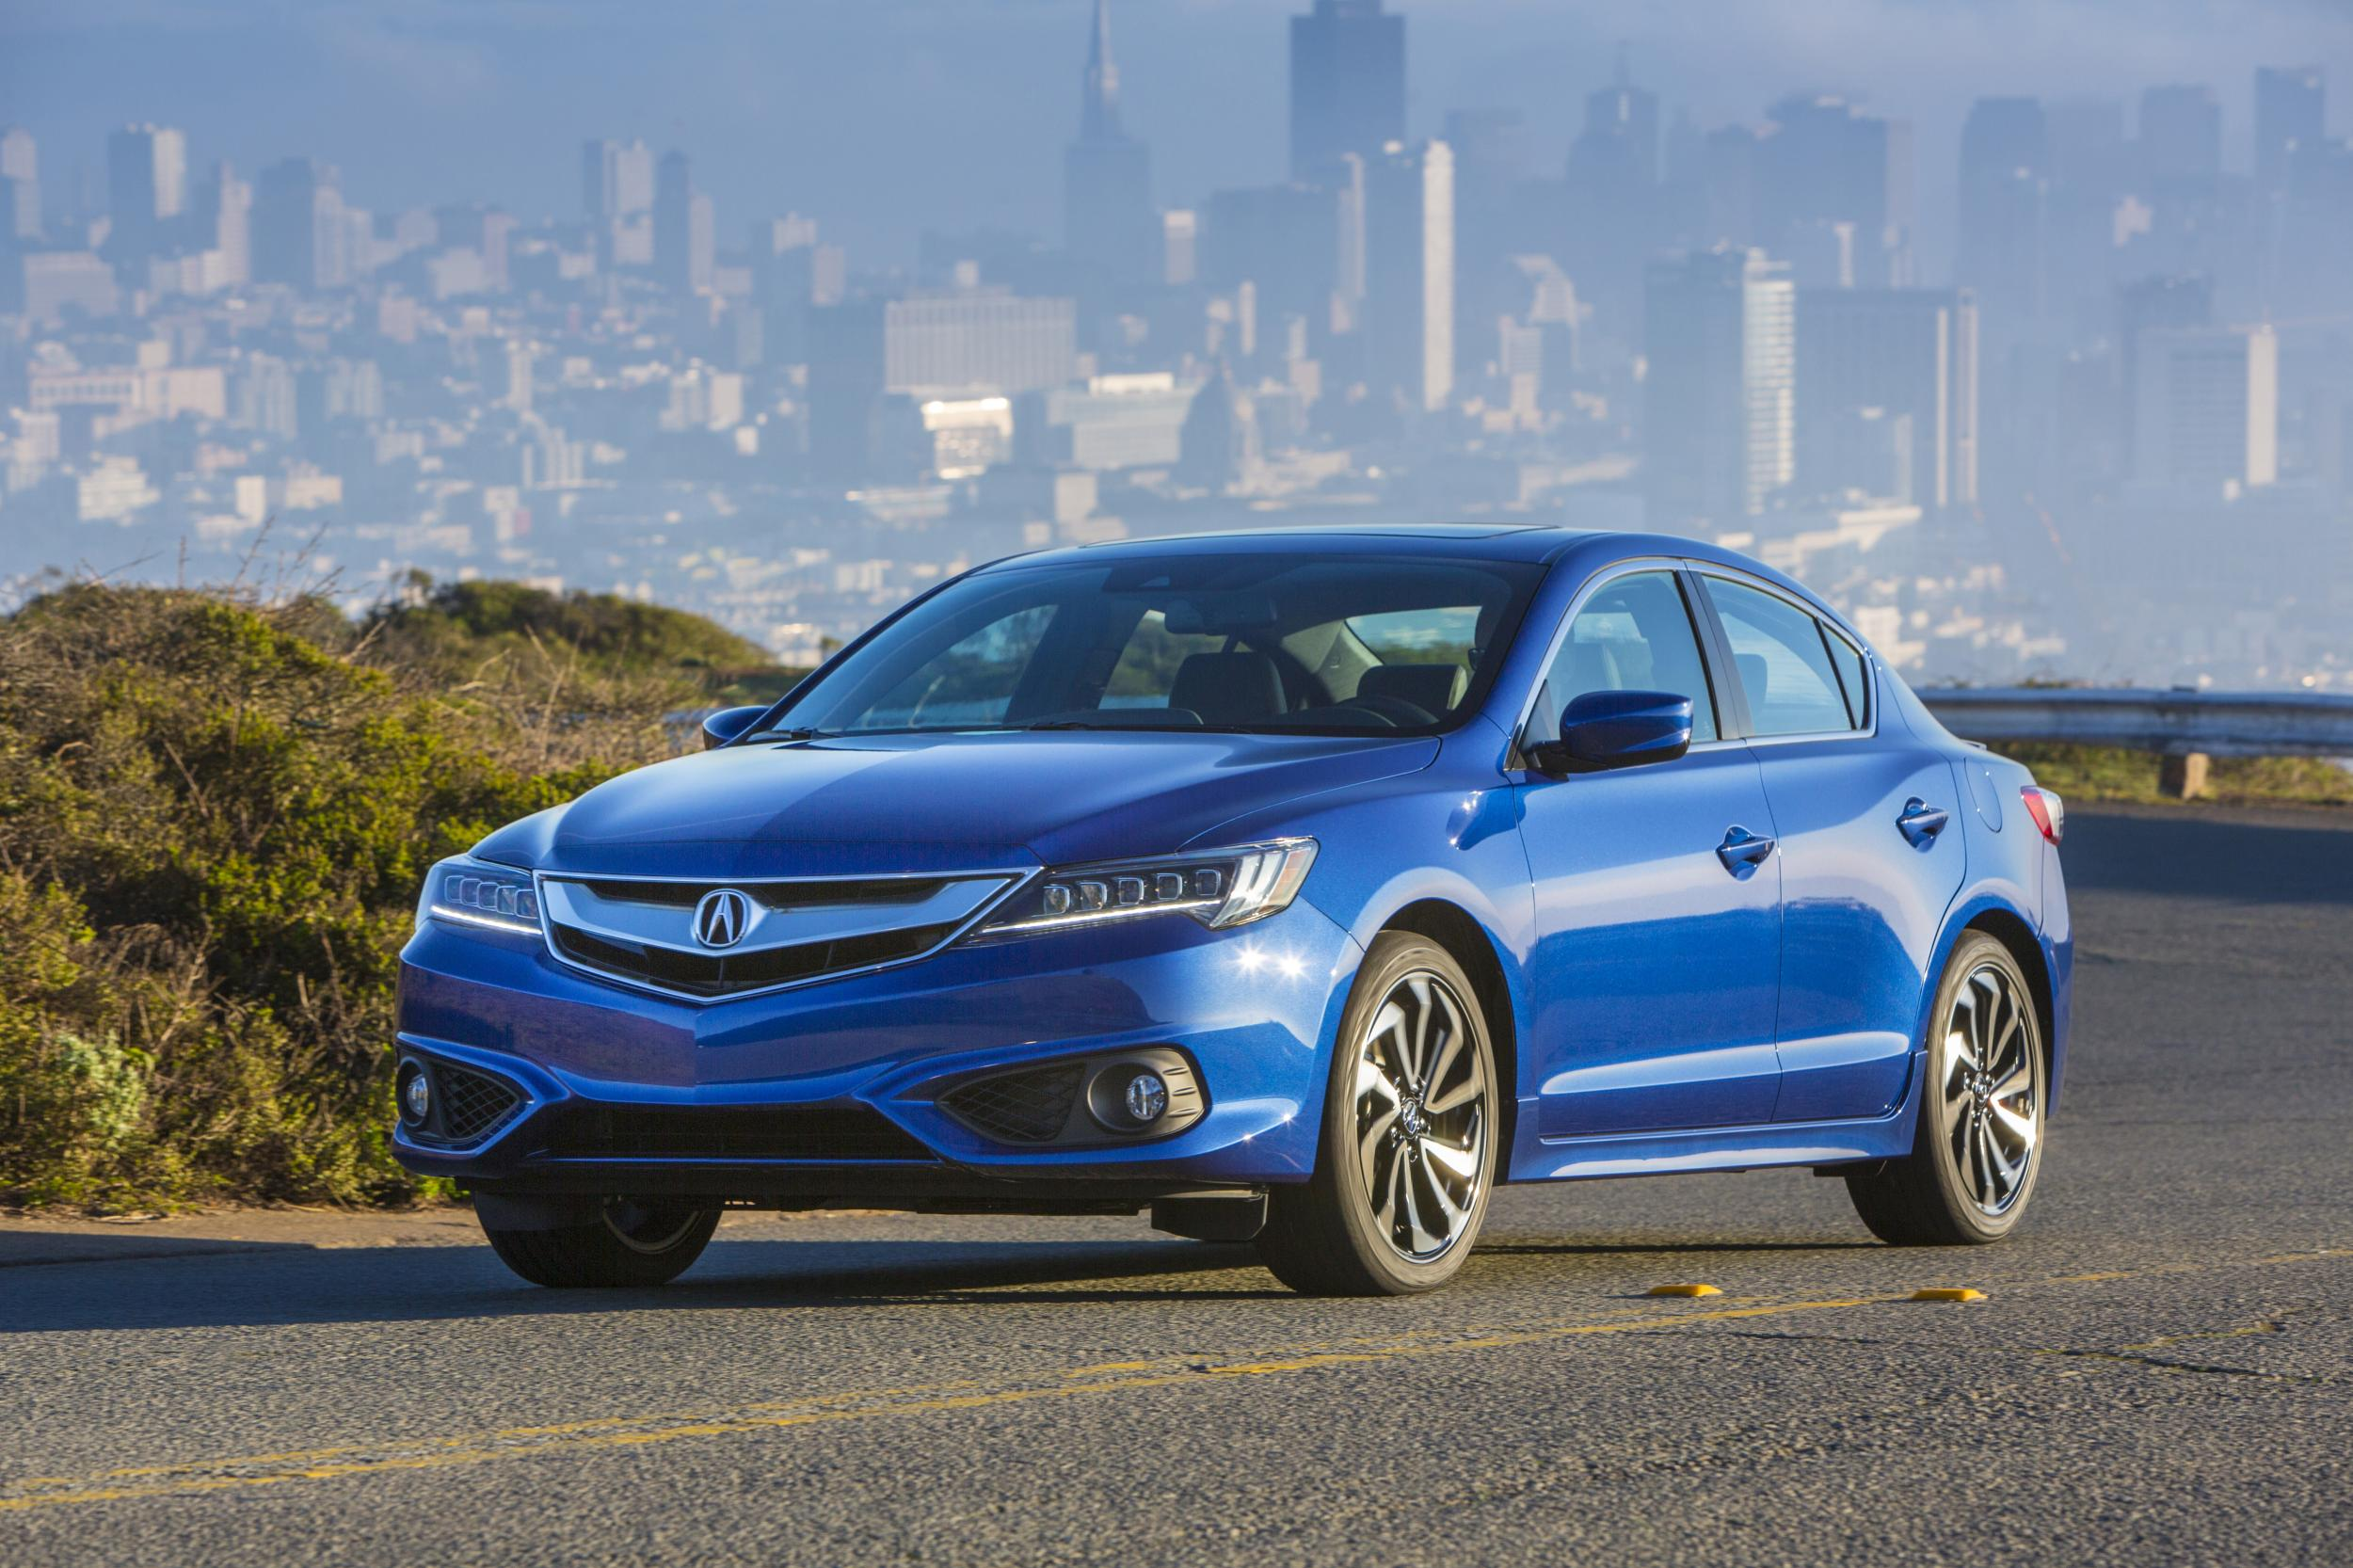 2016 Acura ILX Pricing and Fuel Economy Ratings Divulged ...